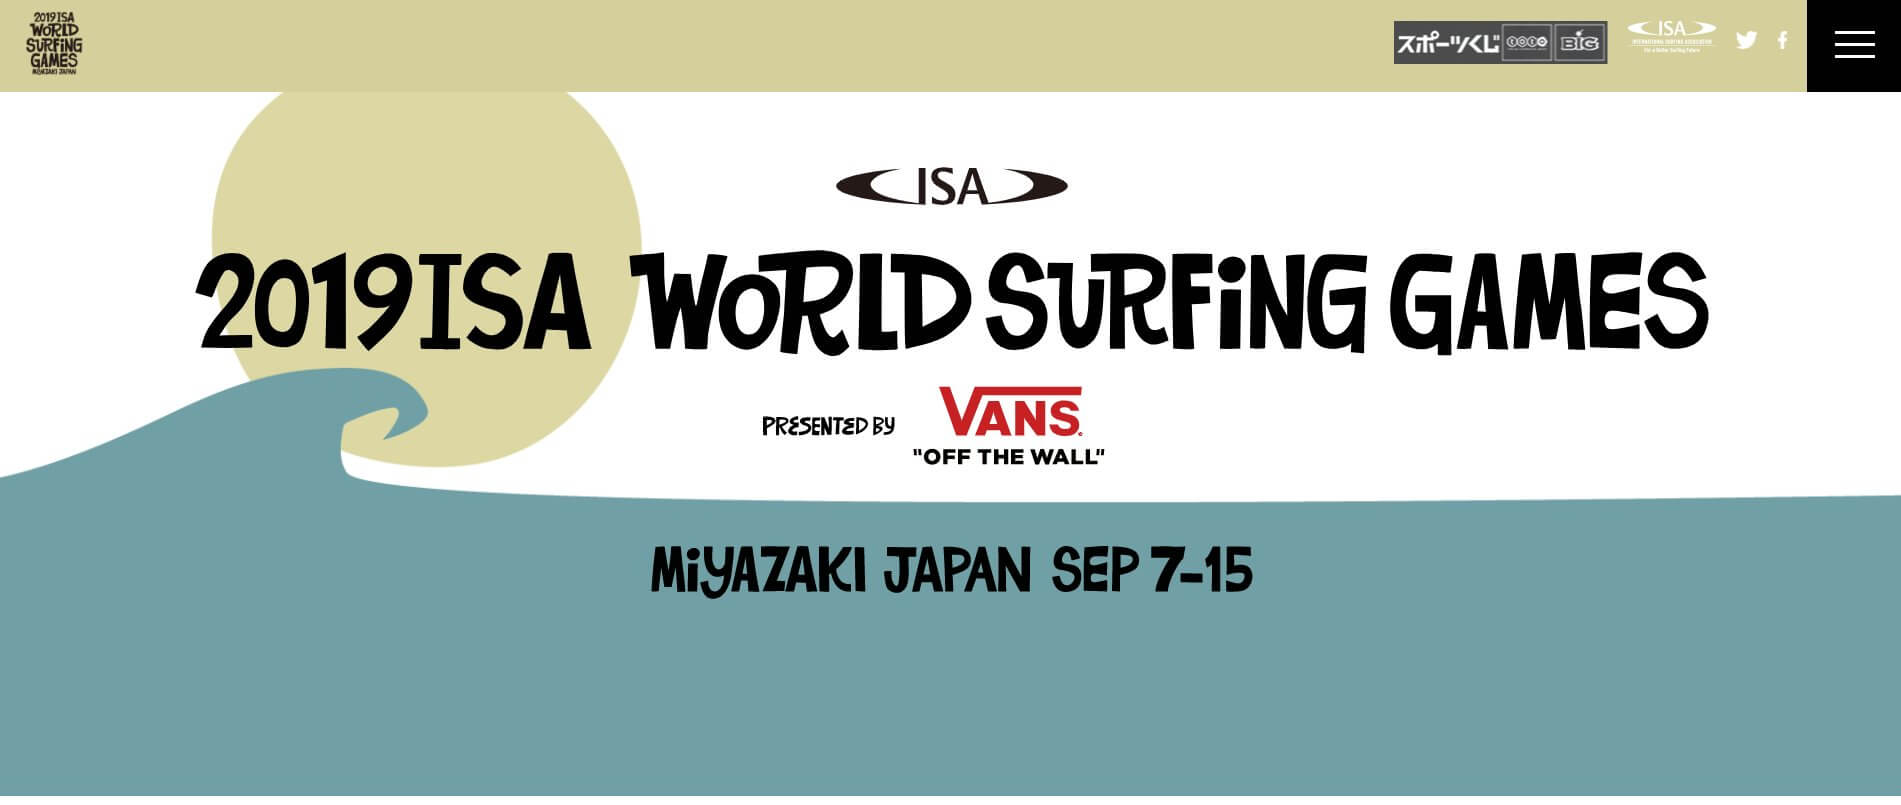 World Surfing Games 2019 HPより引用